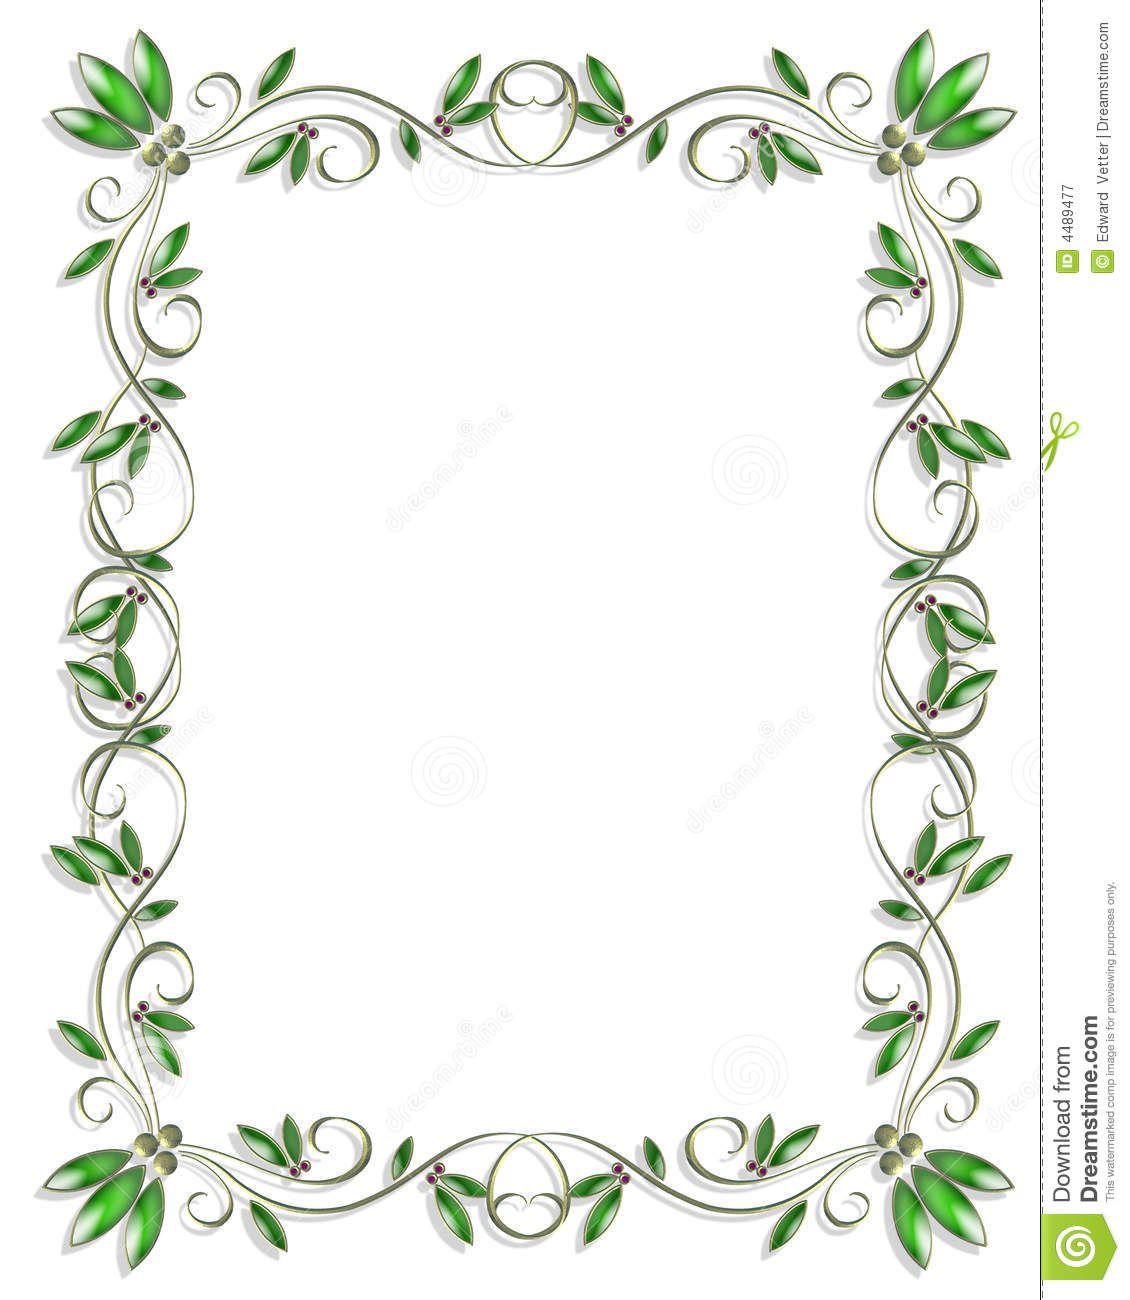 Border design element green 3 stock illustration illustration of border design element green 3 stopboris Images